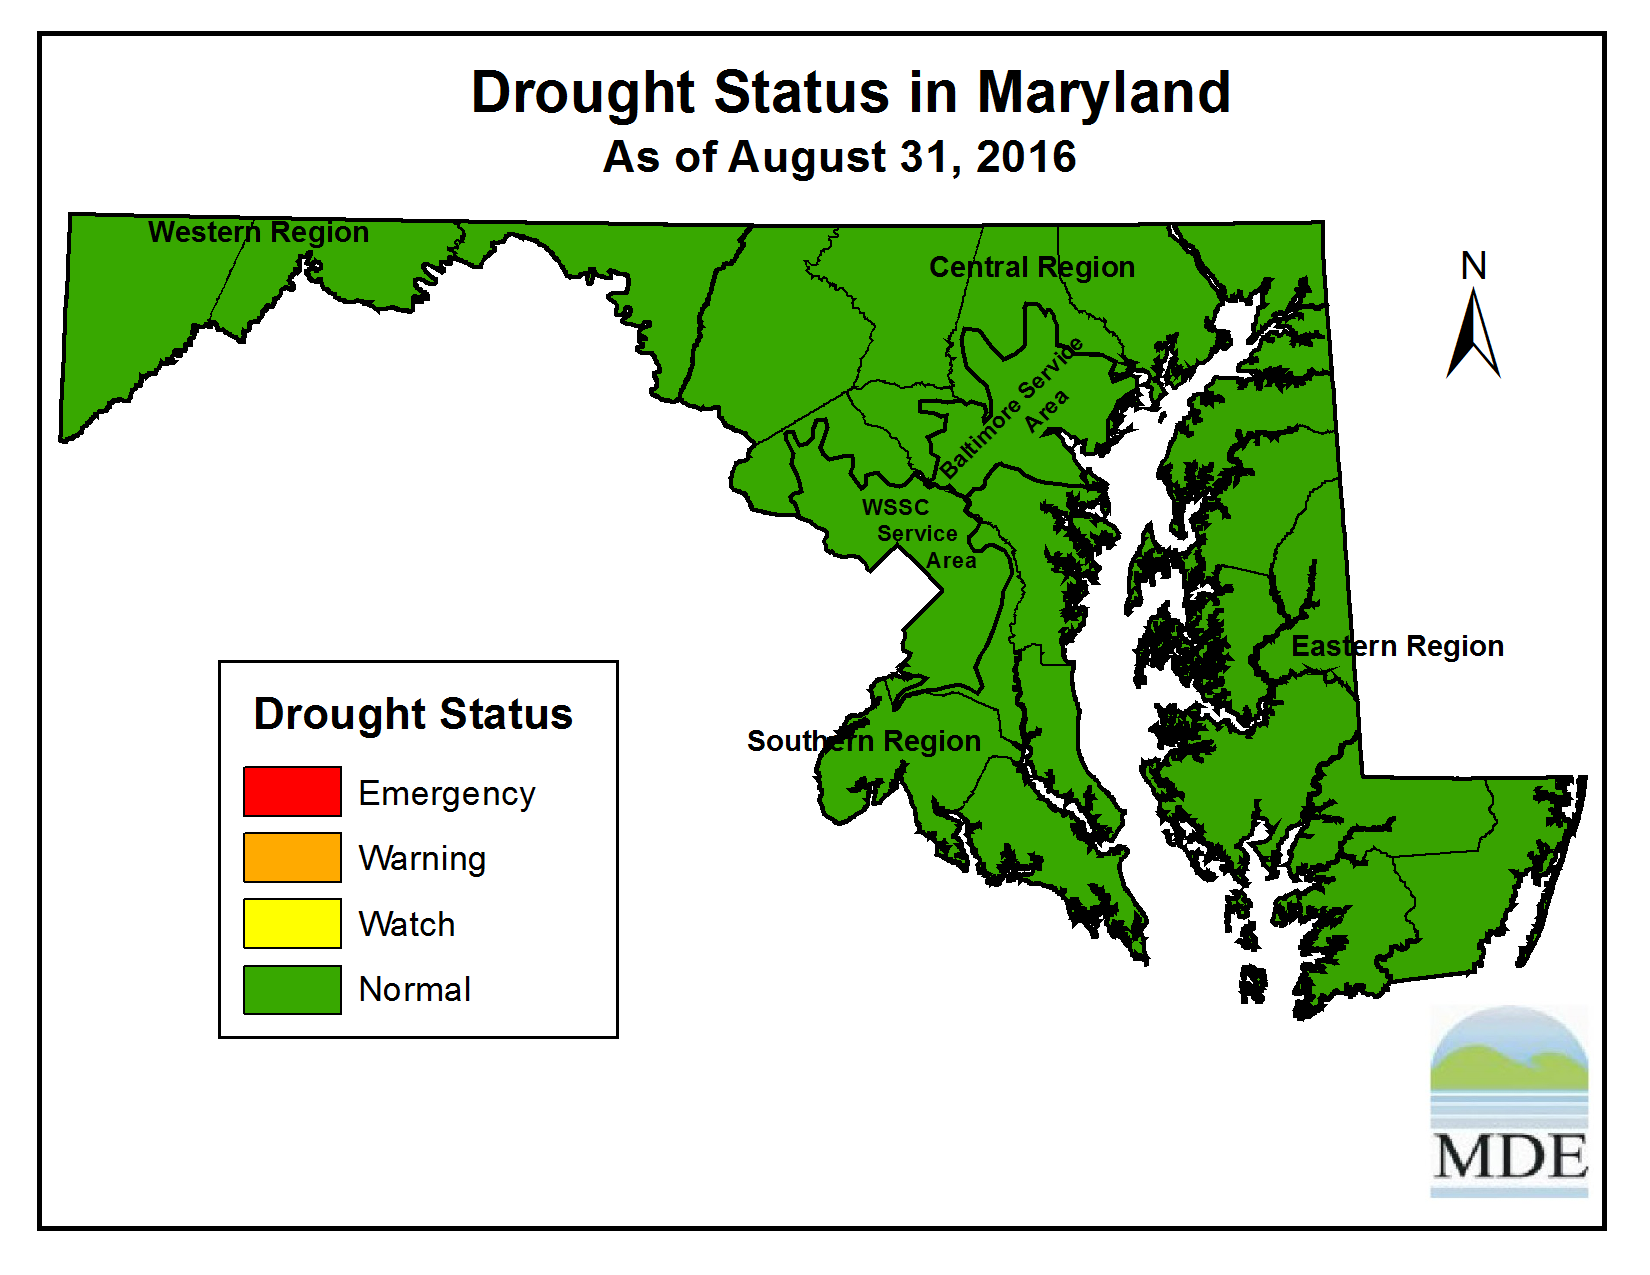 Drought Status as of August 31, 2016